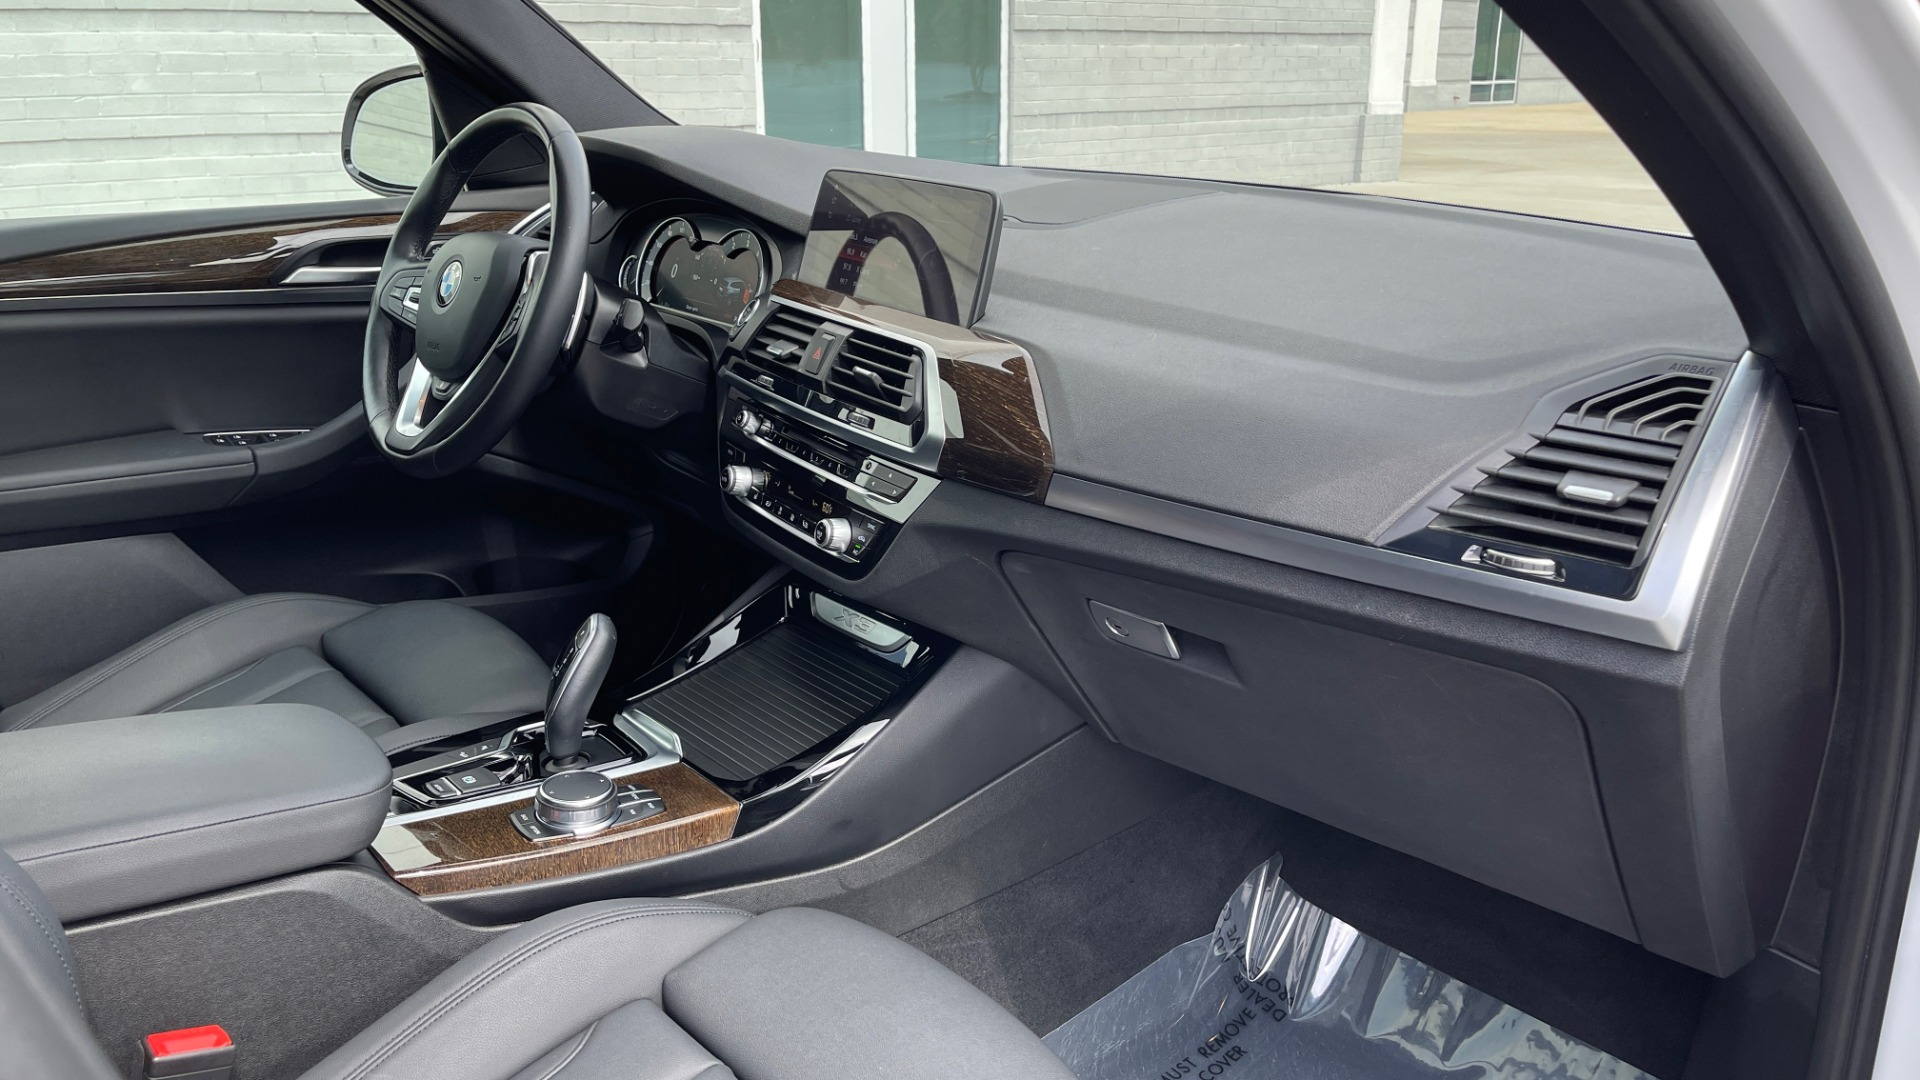 Used 2018 BMW X3 XDRIVE30I / NAV / PANO-ROOF / HTD STS / PARK DIST CNTRL / REARVIEW for sale $38,995 at Formula Imports in Charlotte NC 28227 62